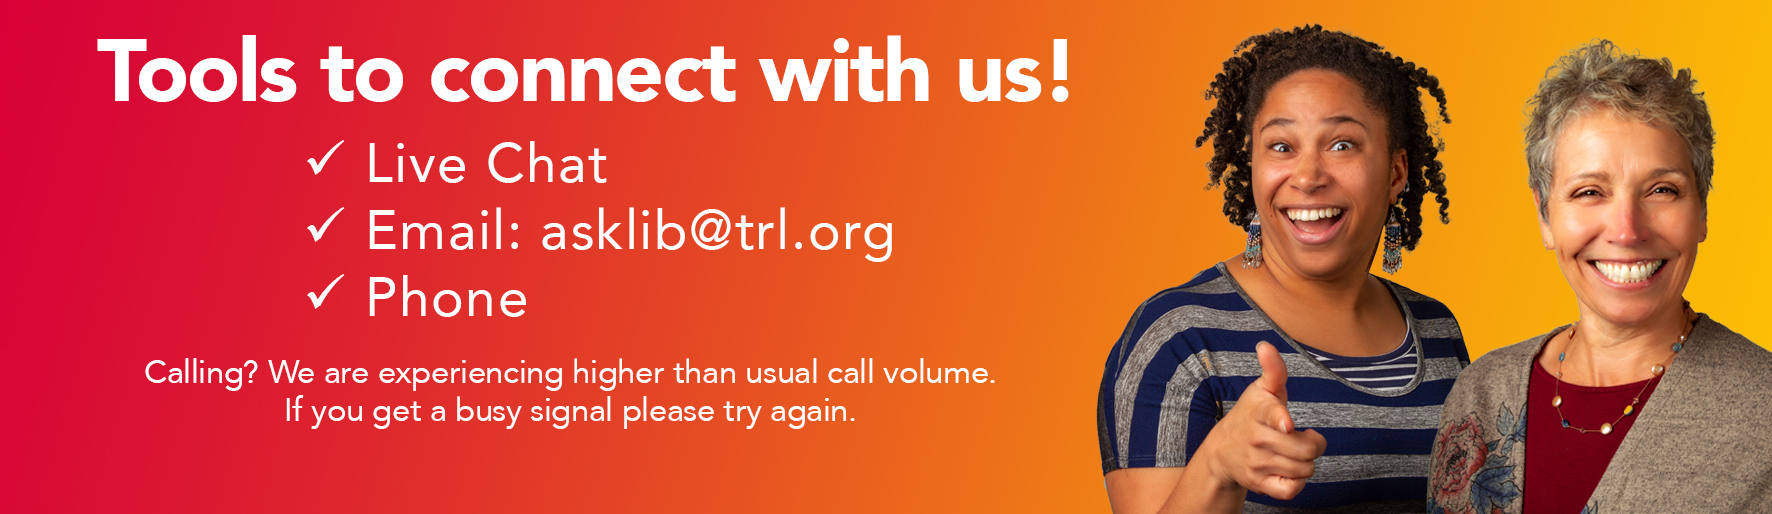 Tools to Connect With TRL